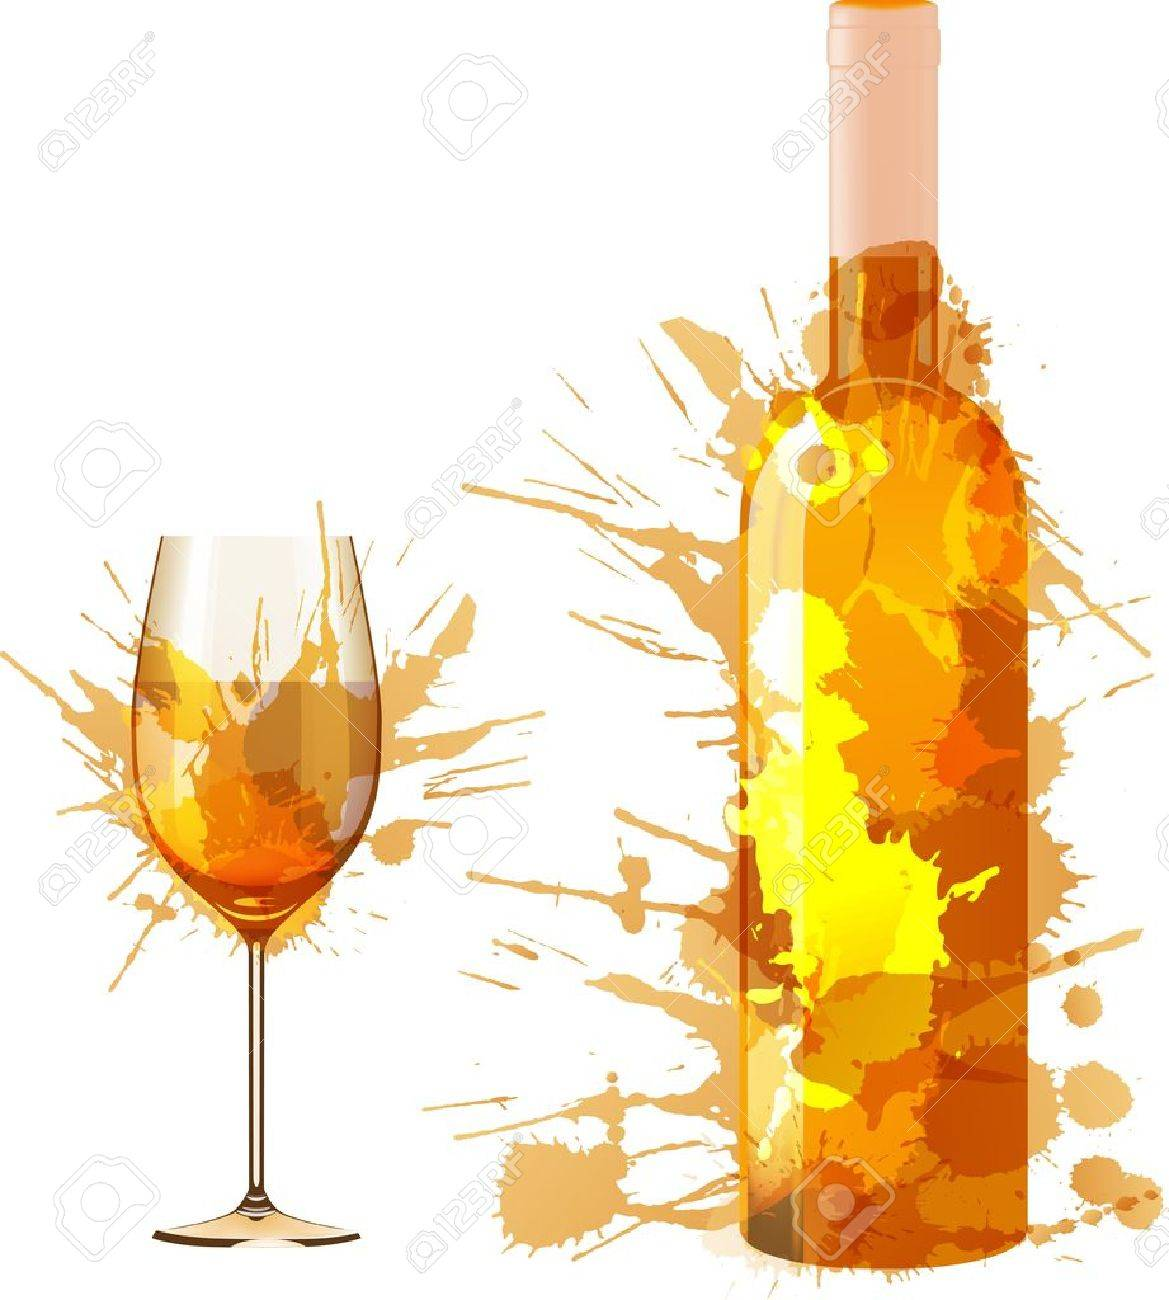 Bottle and glass of wine made of colorful splashes - 21563445